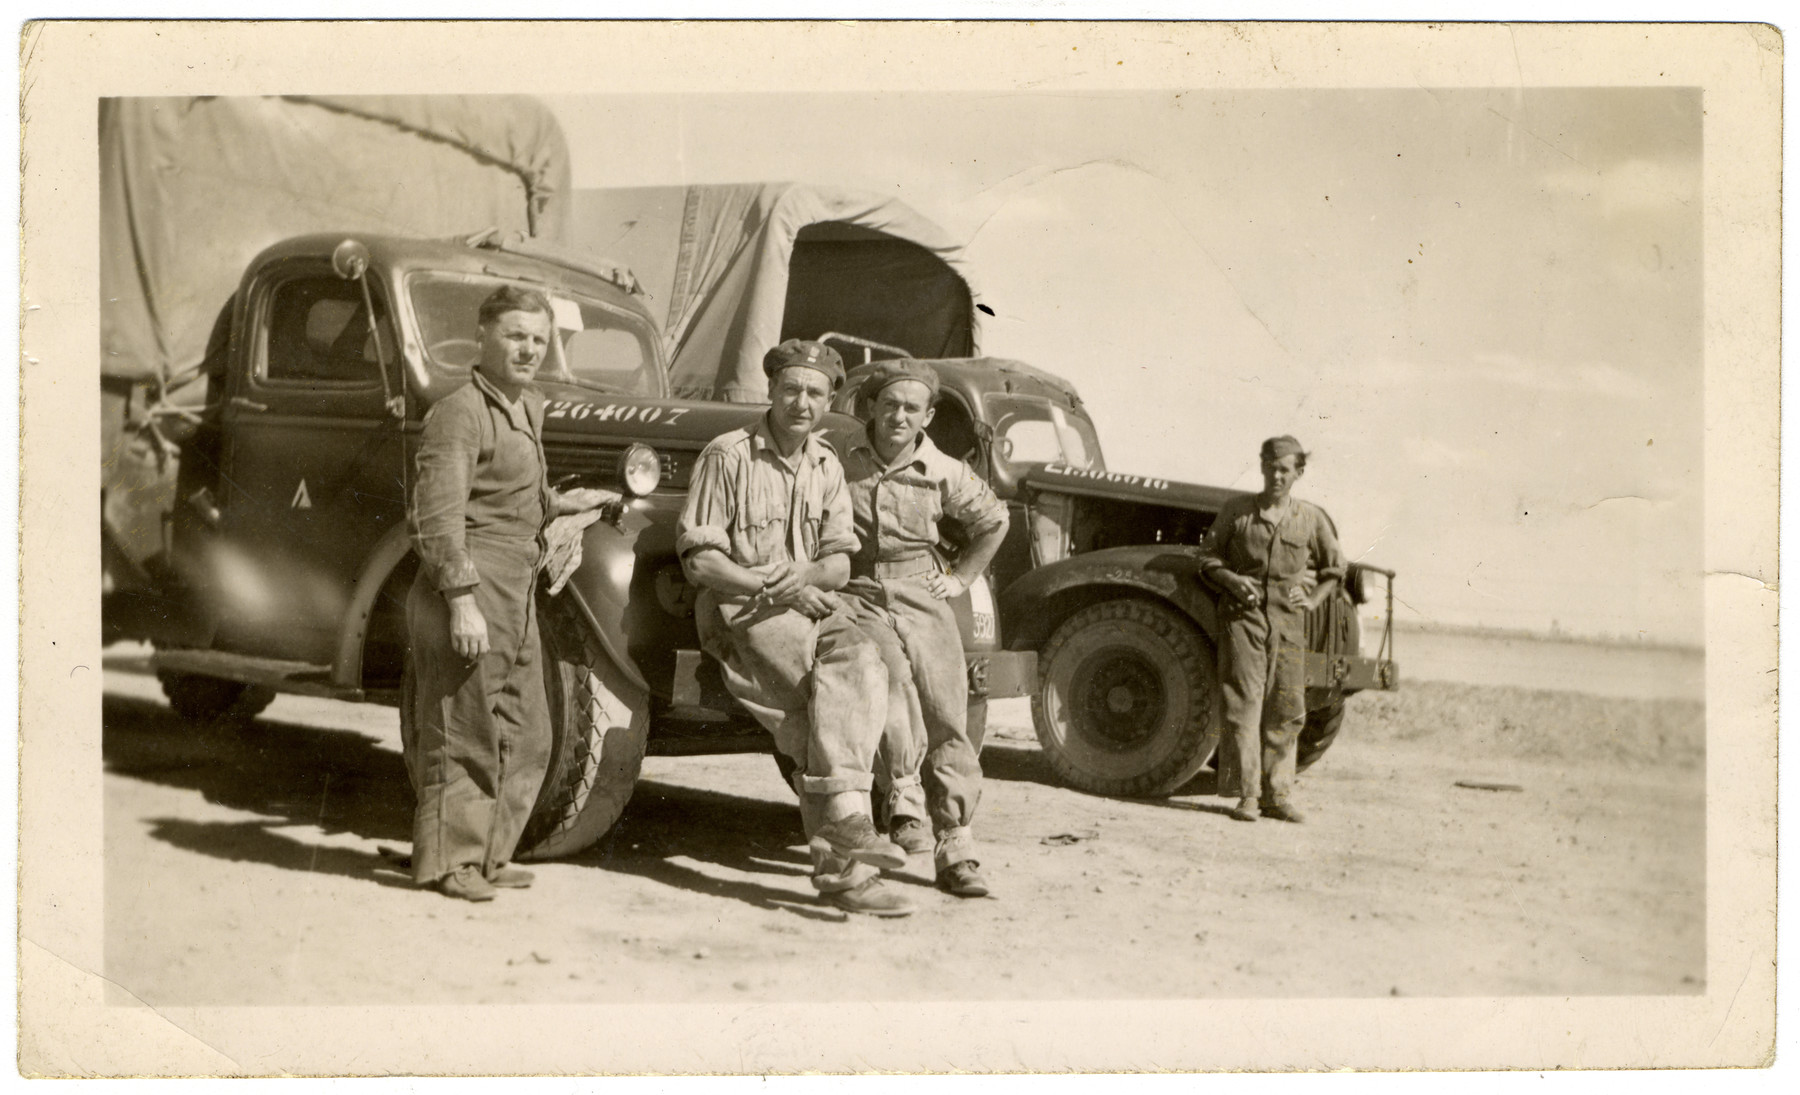 Four soldiers of the Polish Anders' Army, among them donor's cousin Mark Fruehman, are standing against army trucks in Egypt.